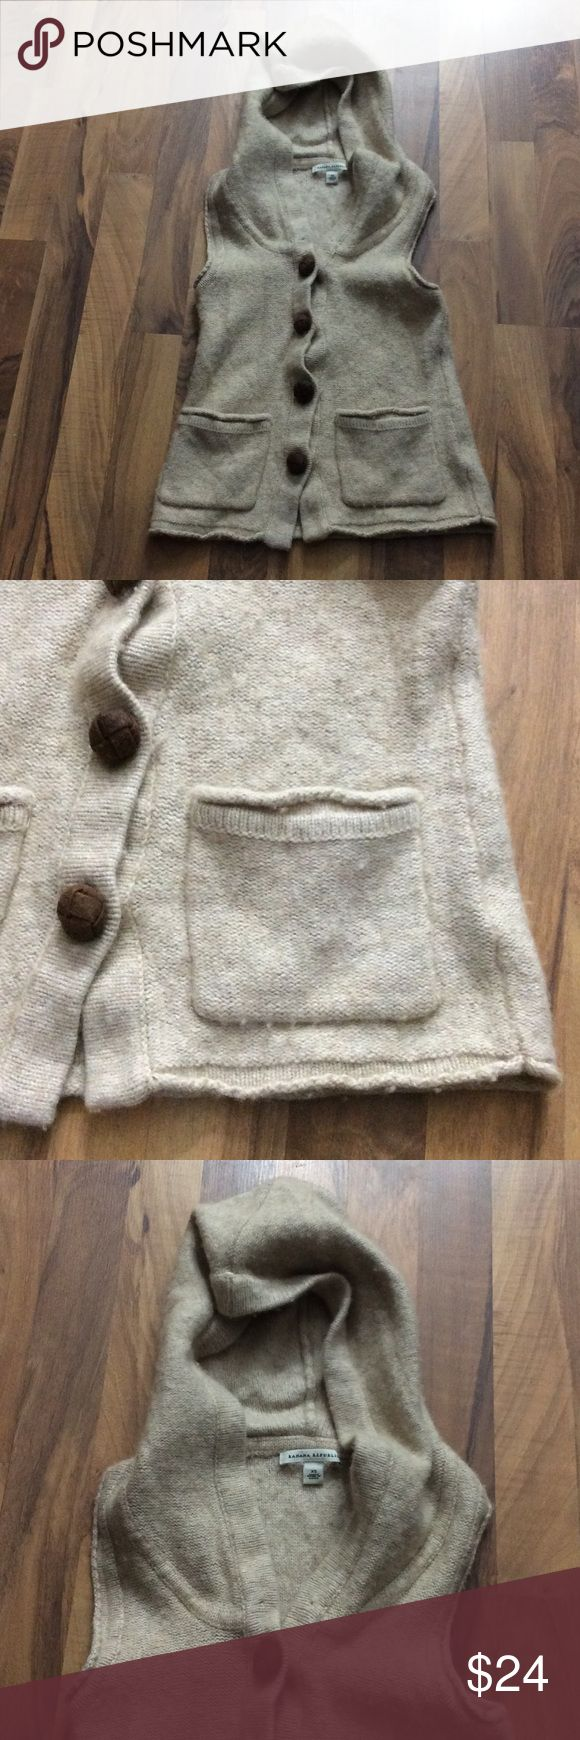 Banana Republic Size XS Wool Cashmere Vest Top This top is up for sale! Good condition! Cute!  ❤ Mix of beiges, warm fuzzy feel ❤ Hooded vest, button up ❤ 50% Lambs Wool, 35% wool, 10% Nylon, 5% cashmere ❤ Size Measured in Pictures ✅ Bundle up and save ✅ Banana Republic Tops Button Down Shirts